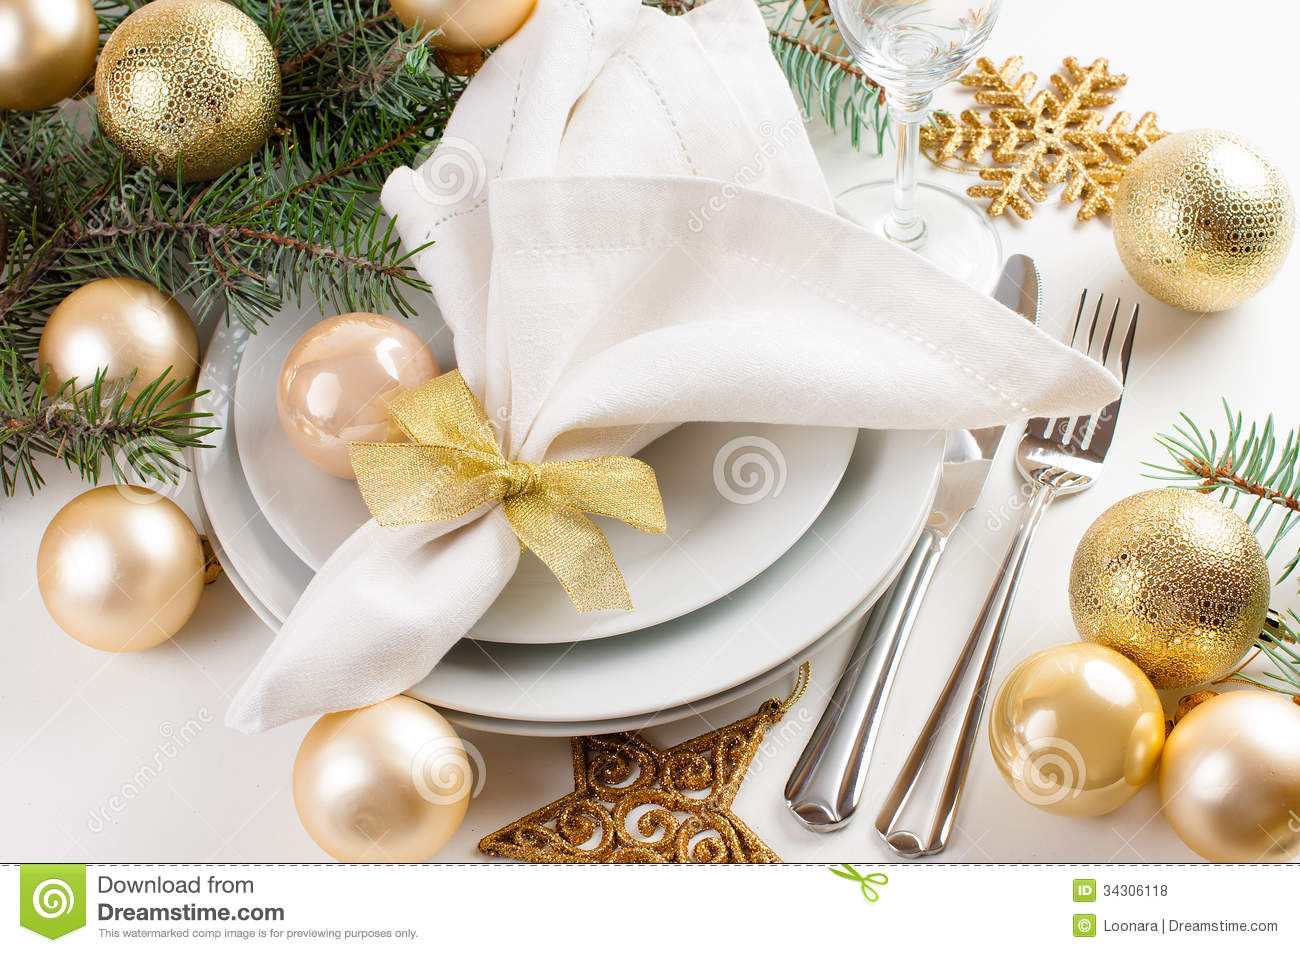 Christmas Table Setting In Gold Tones Royalty Free Stock